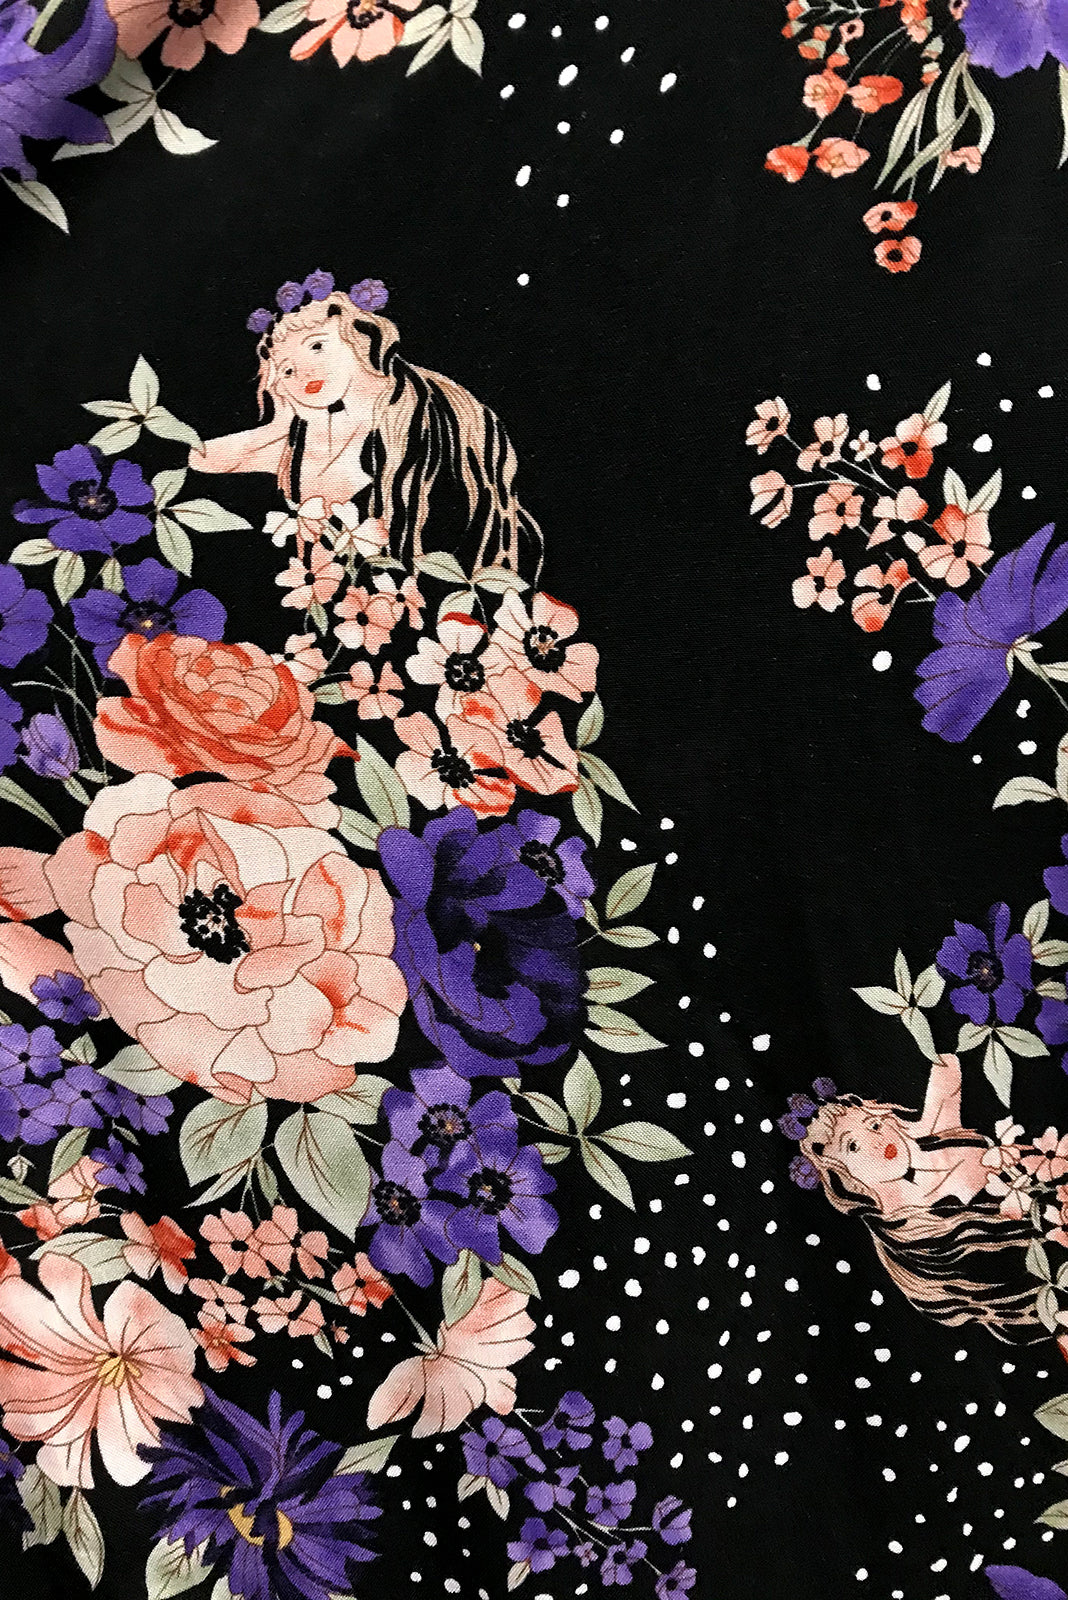 Fabric swatch of Adoro Mermaid Noir Maxi Dress featuring 100% rayon in black base with pink and purple floral print.